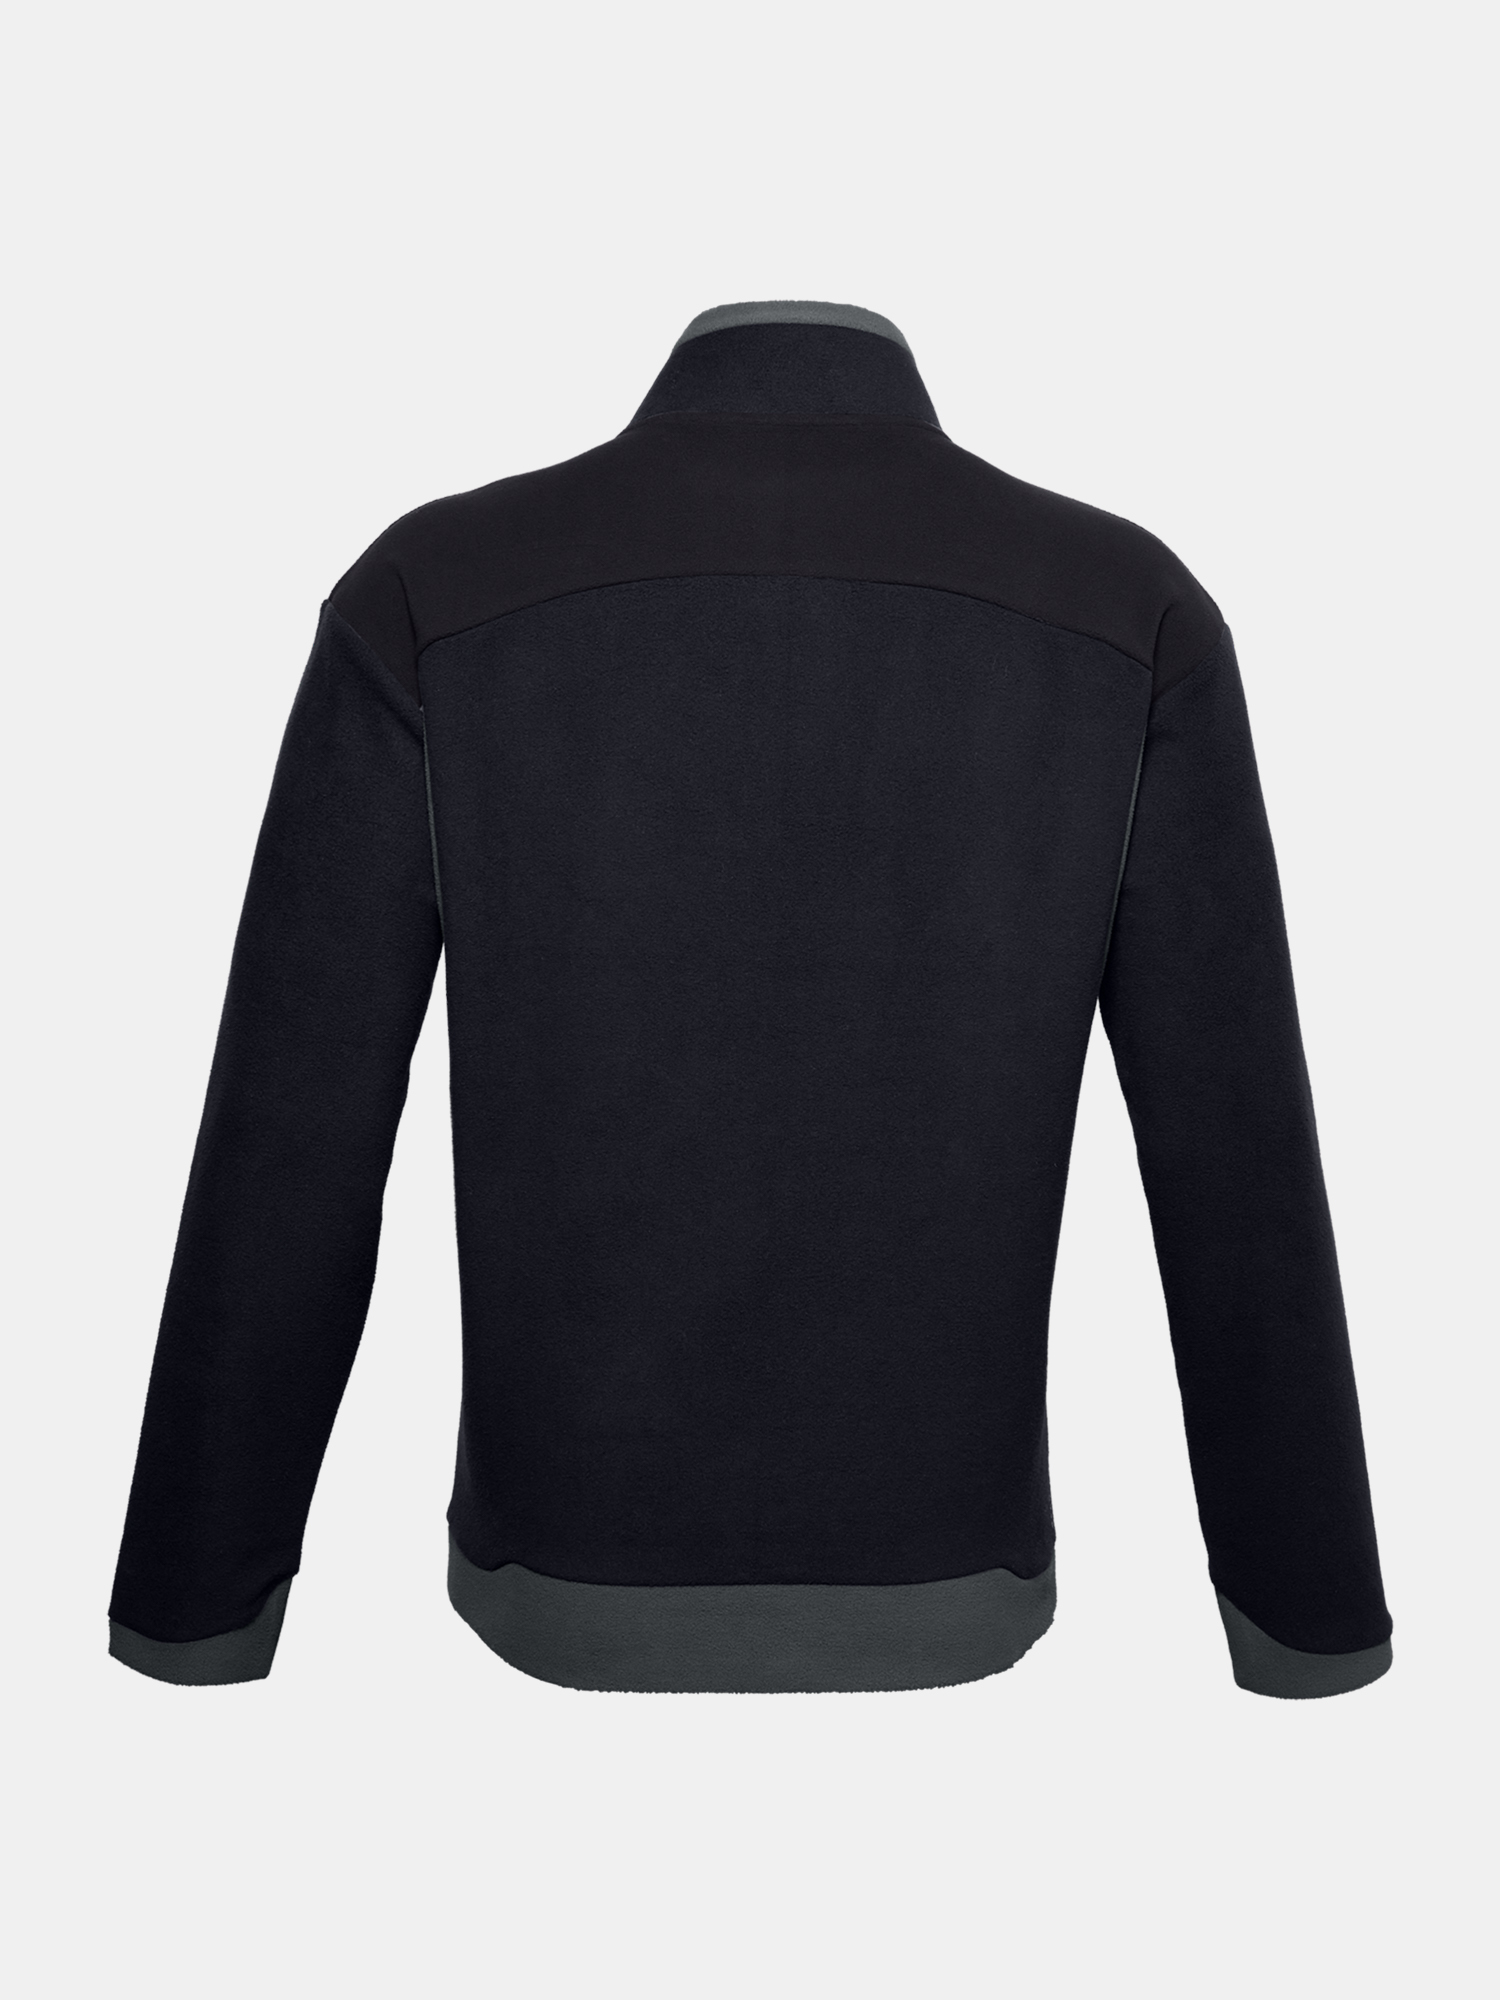 Bunda Under Armour Recover Fleece 1/4 Zip-BLK (4)